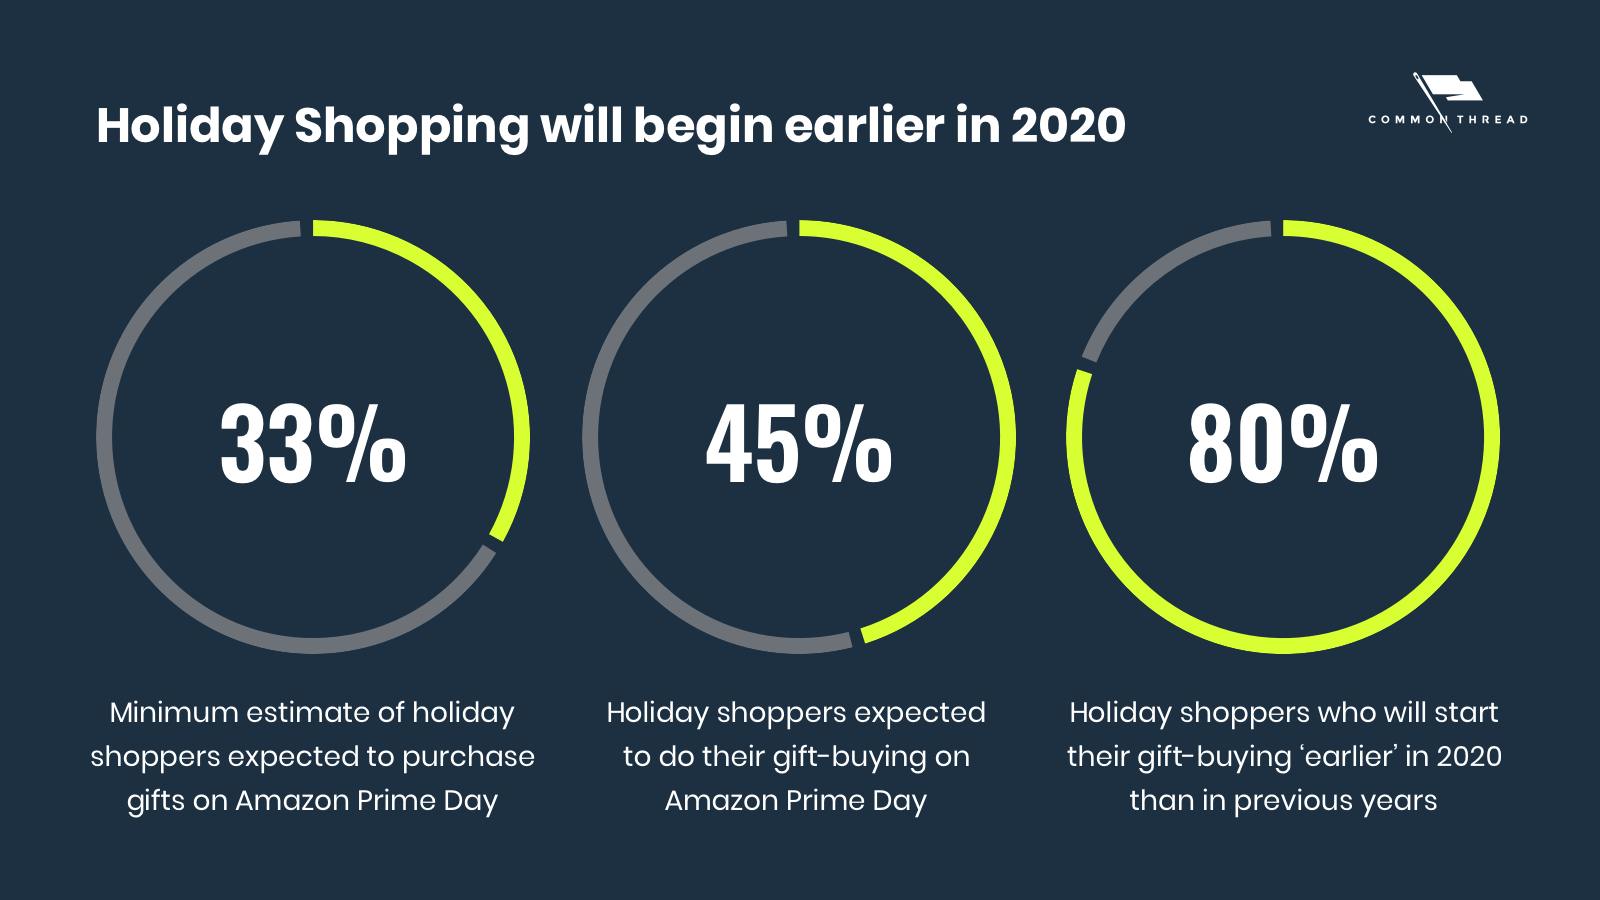 Holiday Shopping will begin earlier in 2020